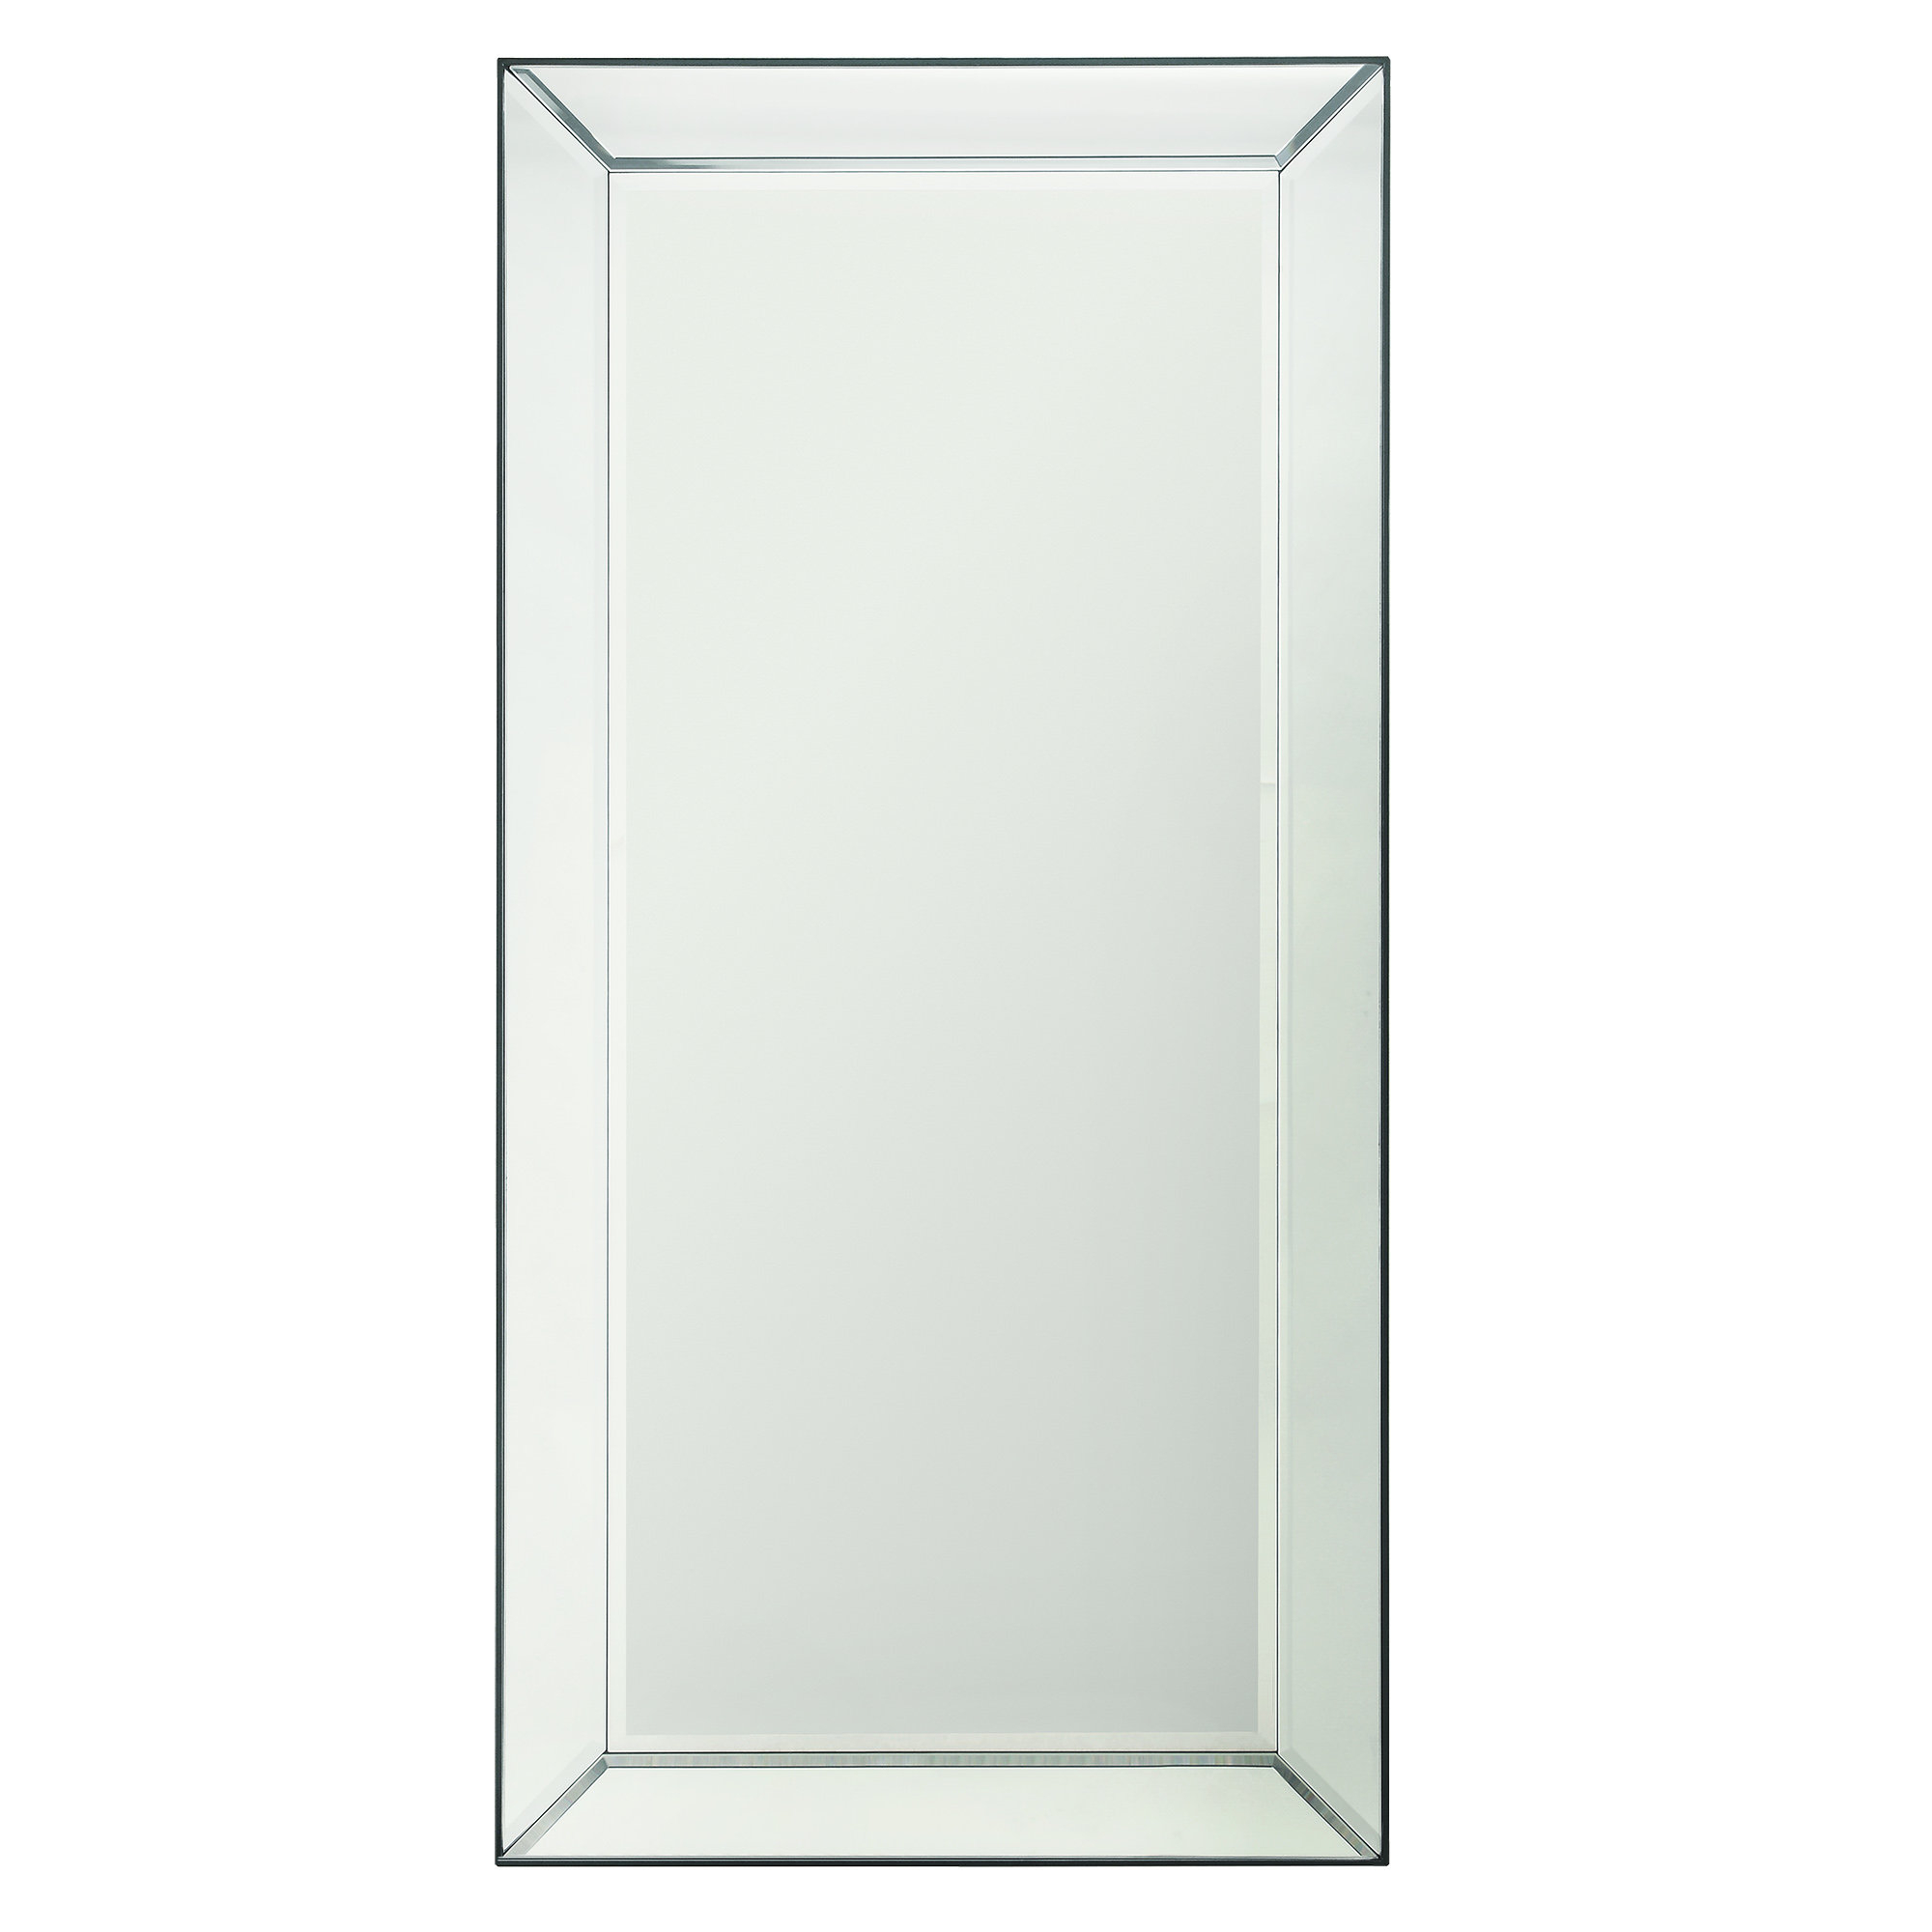 Templin Traditional Wall Mirror Pertaining To Traditional Metal Wall Mirrors (Image 11 of 20)